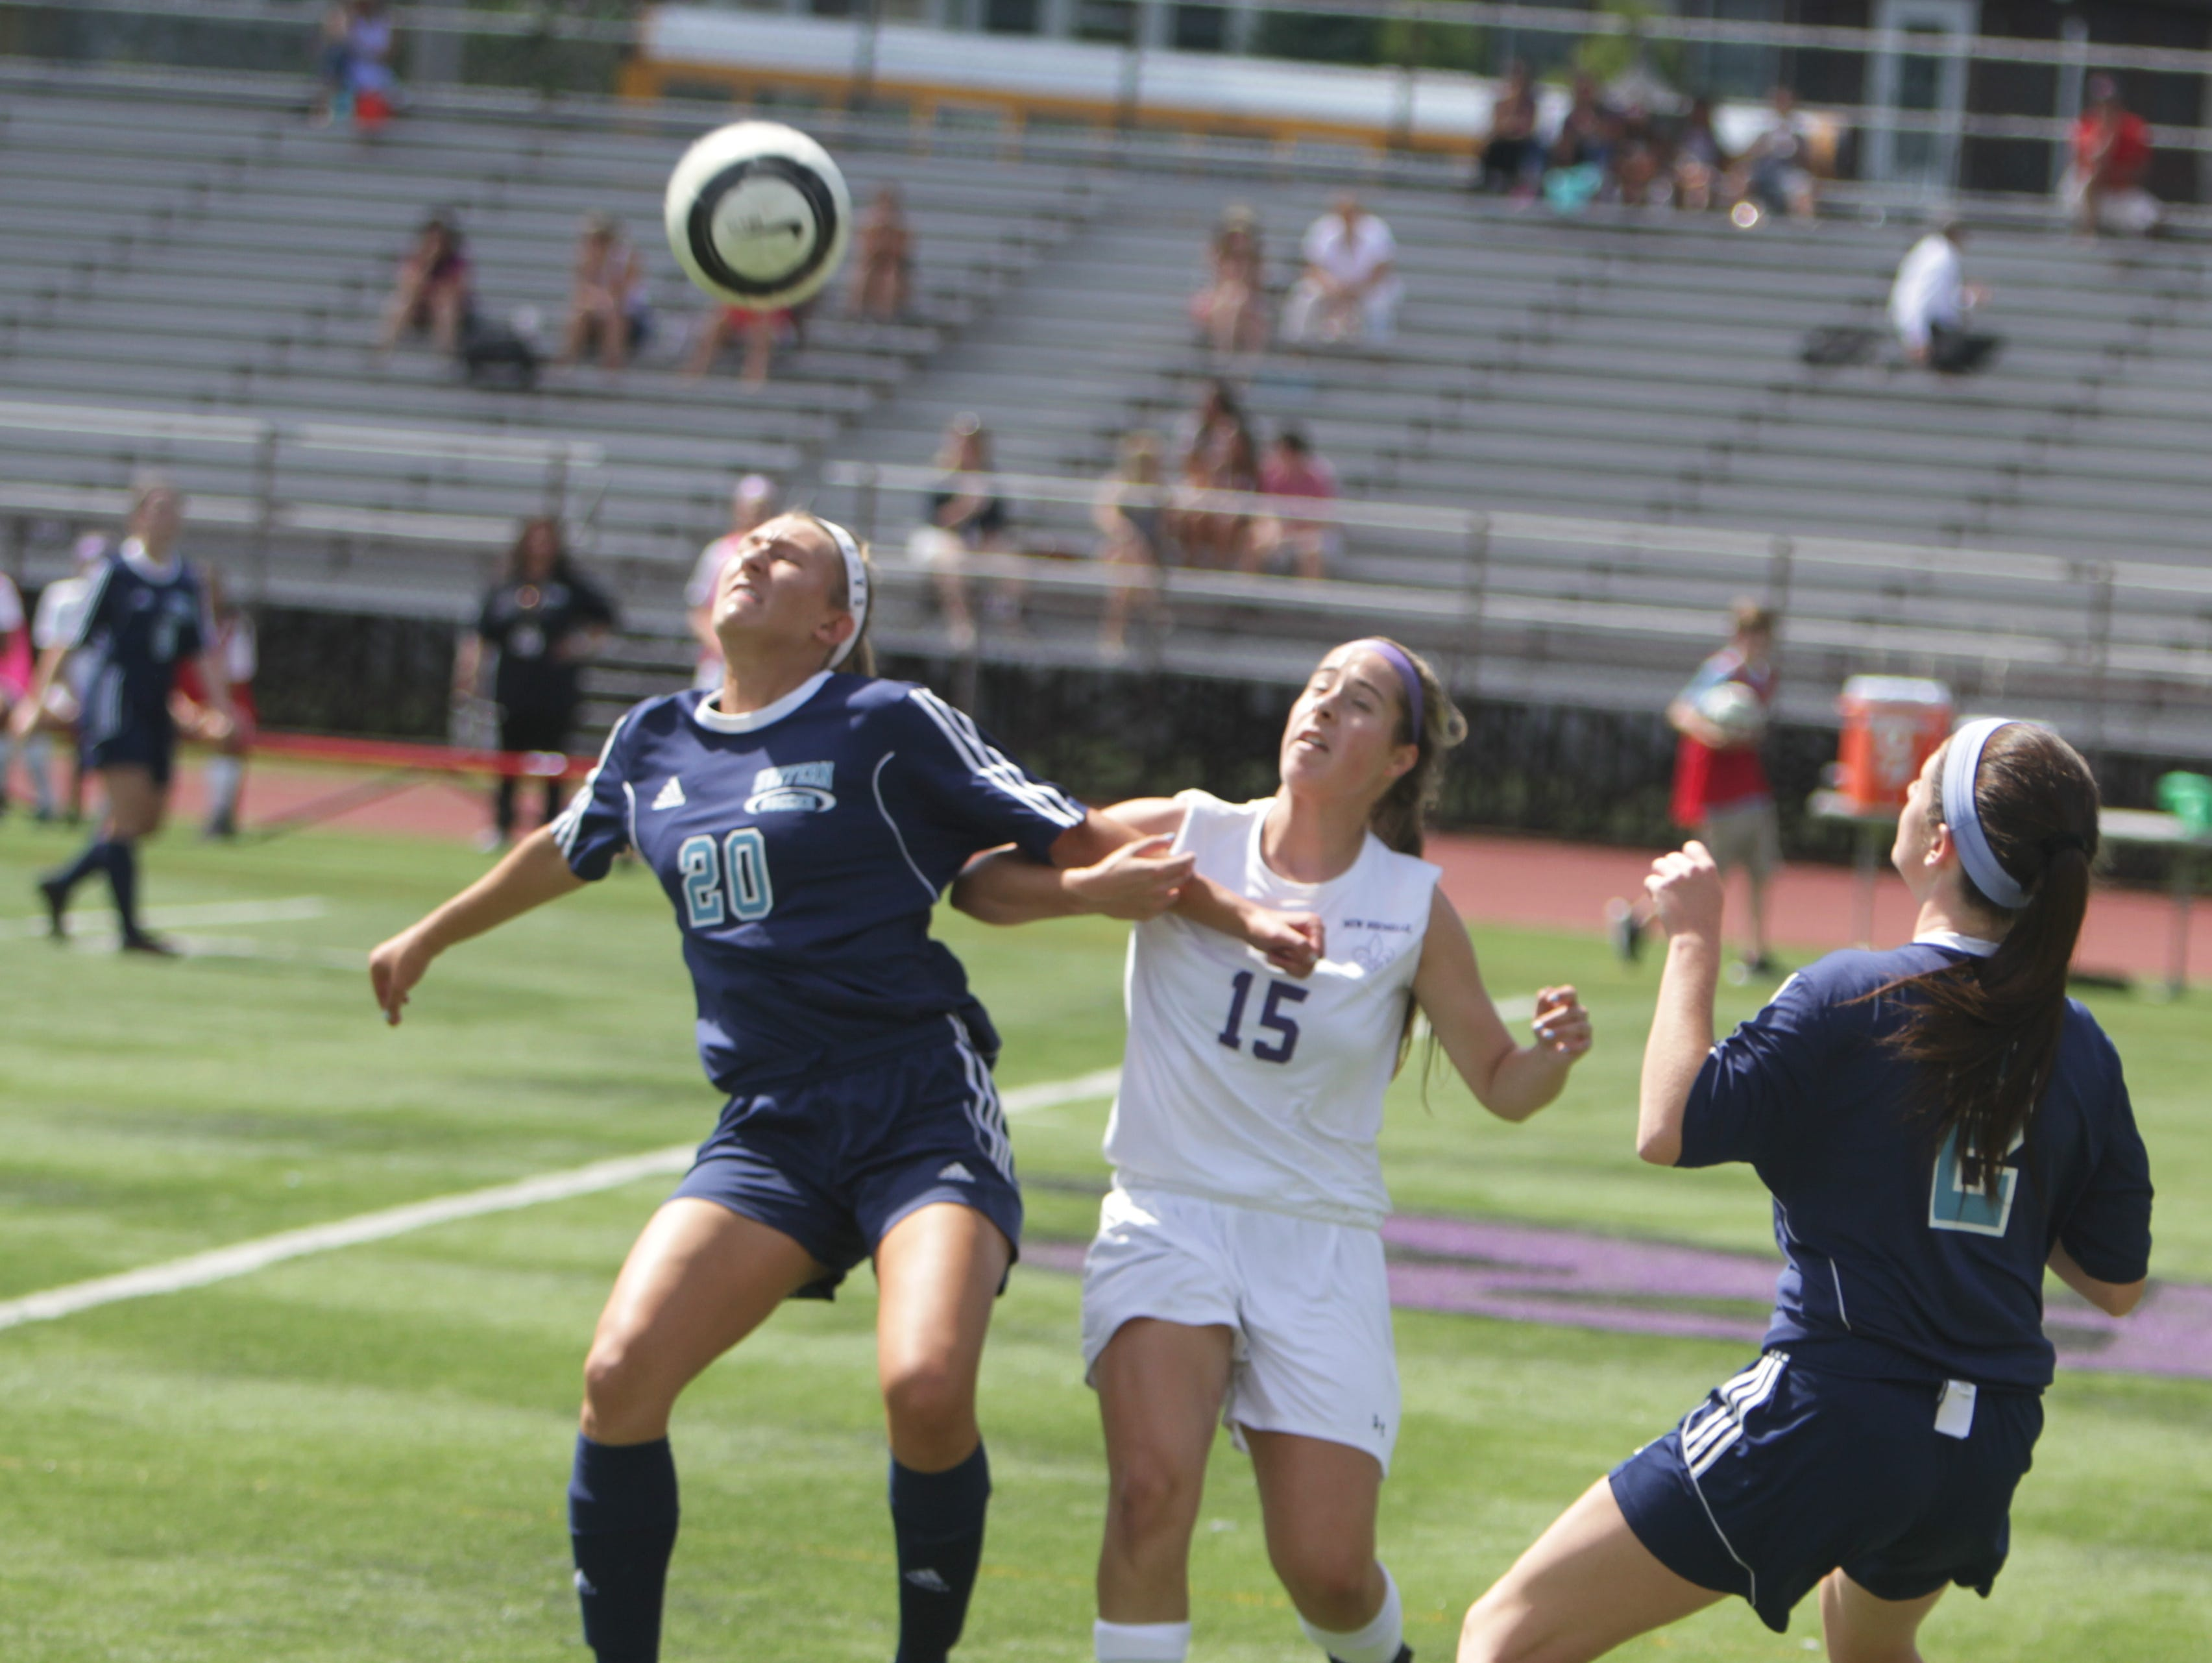 Suffern's Jayne Goldman (20) and New Rochelle's Sophie Wolf (15) fight for a ball in the air during a Section 1 girls soccer game between New Rochelle and Suffern at New Rochelle High School Friday, Sept. 2. Suffern won 4-1.